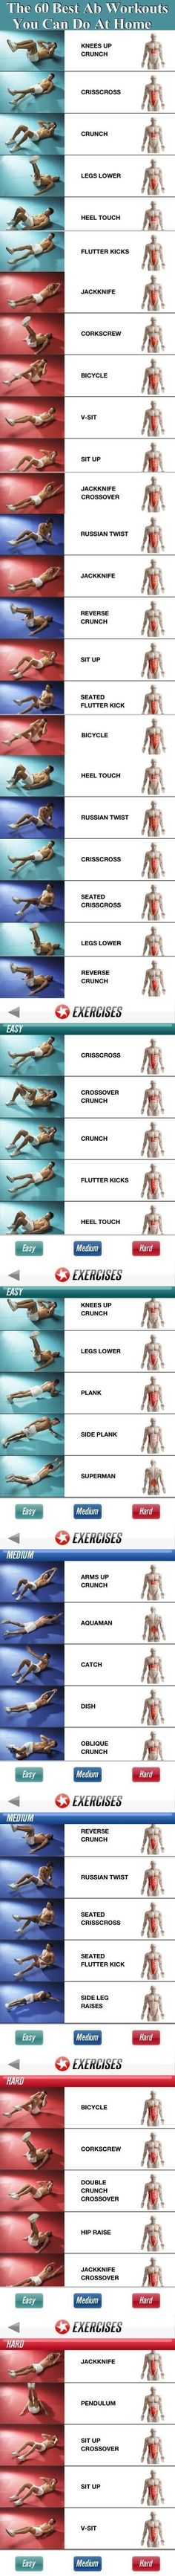 men's abs workout charts